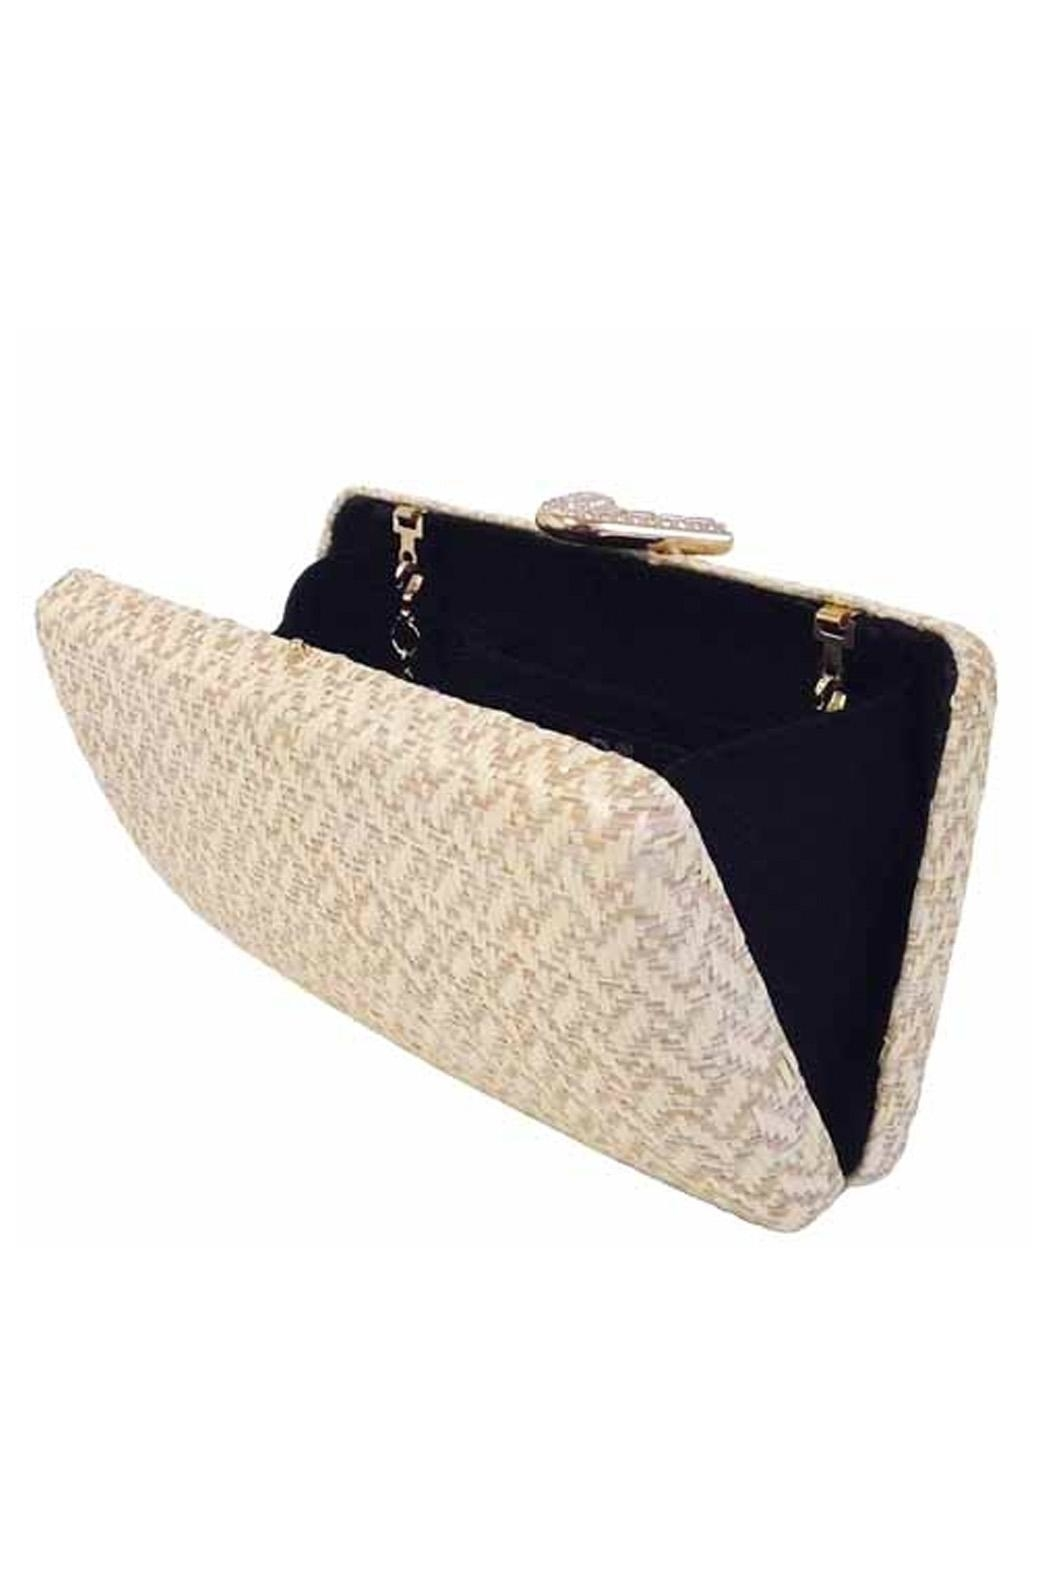 Wild Lilies Jewelry  Nude Box Clutch - Front Full Image